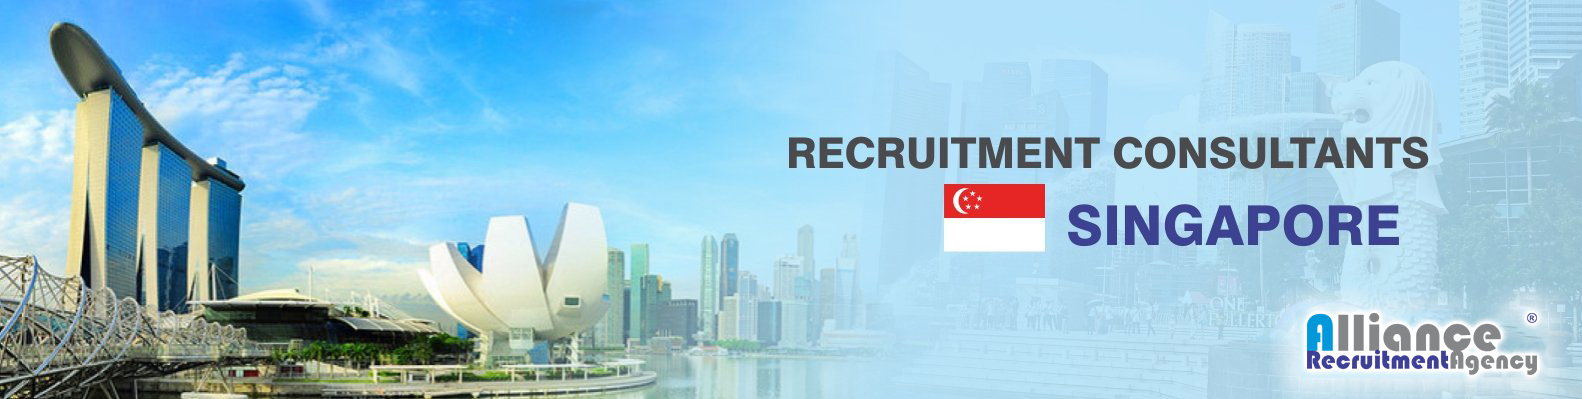 recruitment agency singapore